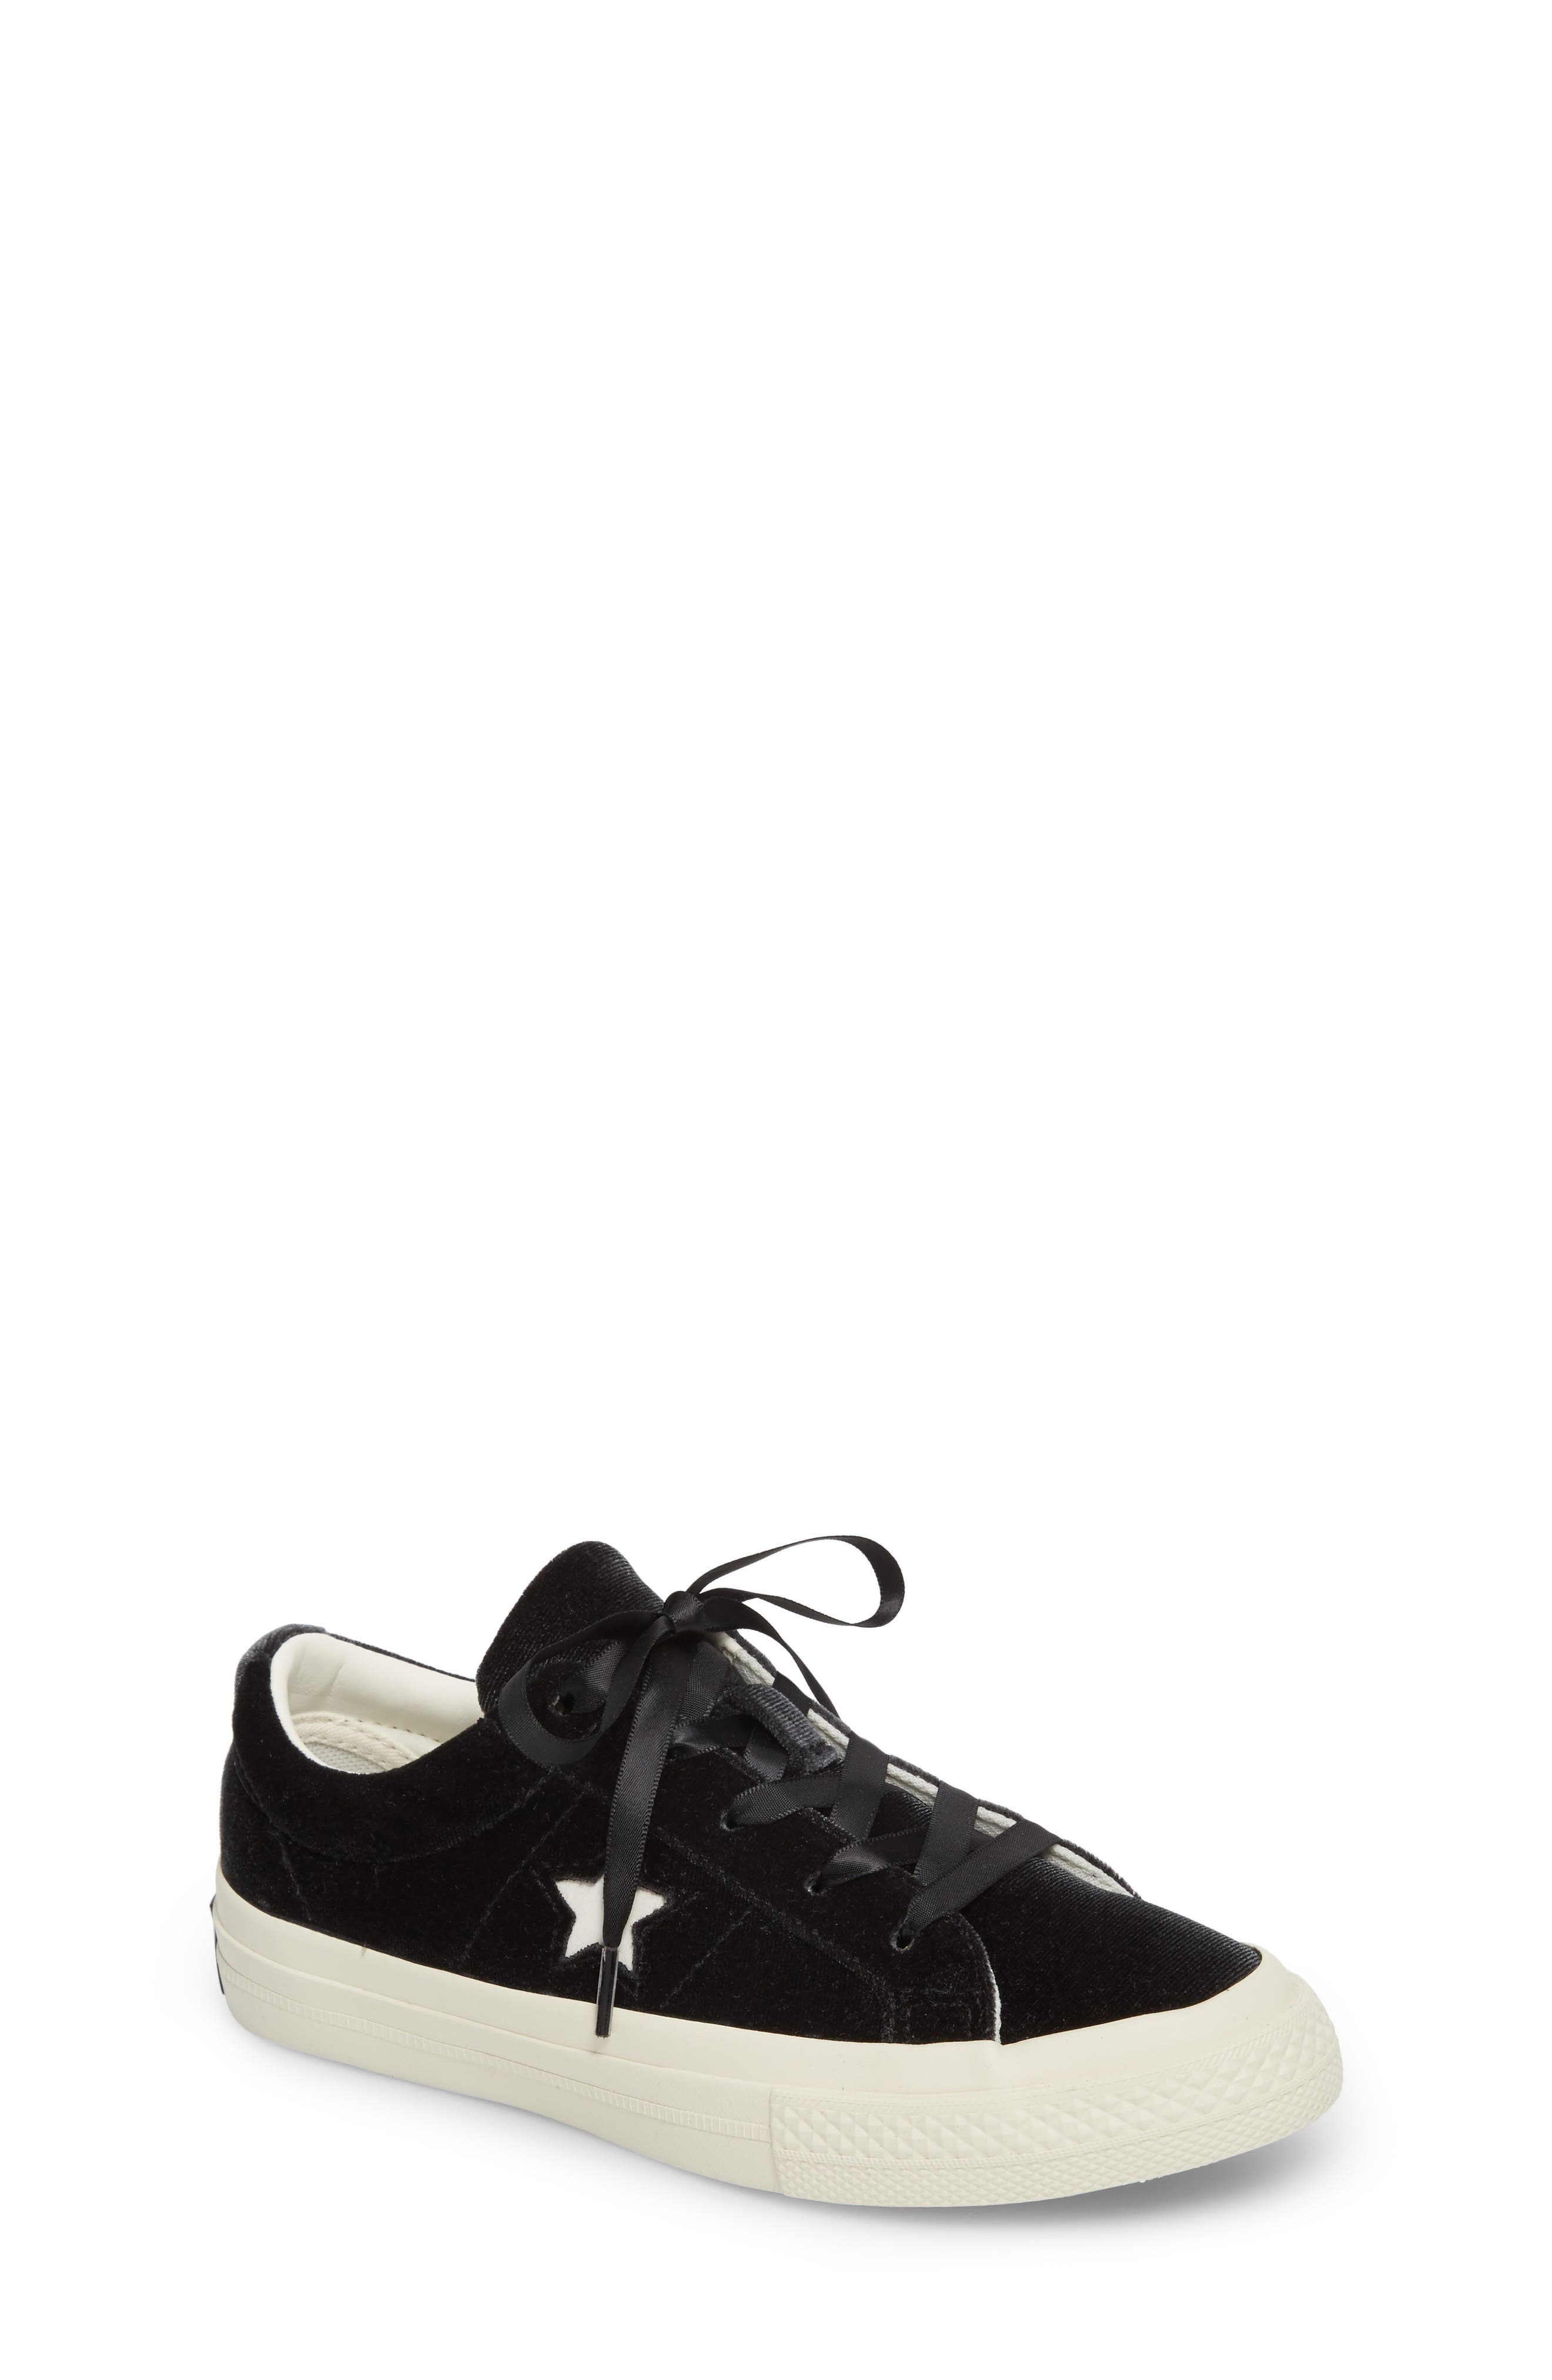 Chuck Taylor<sup>®</sup> All Star<sup>®</sup> One Star Velvet Platform Sneaker,                         Main,                         color,